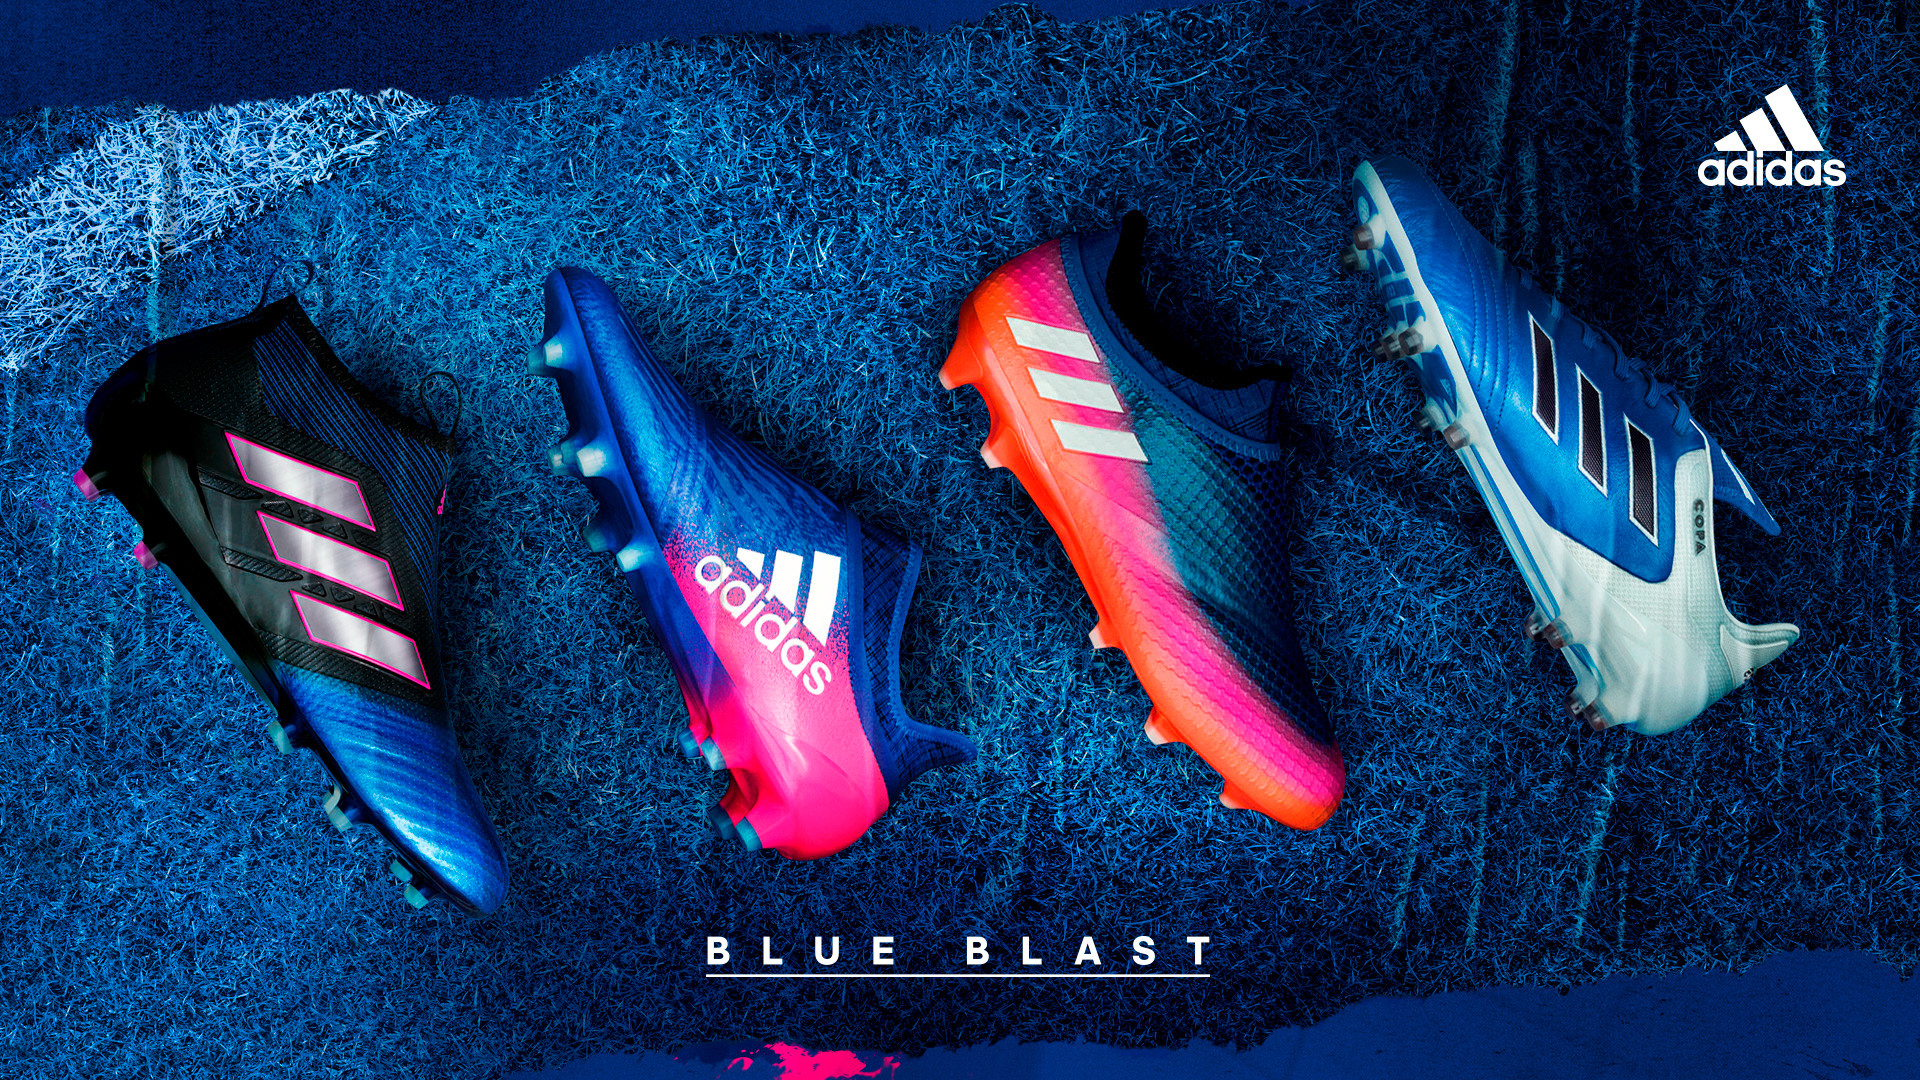 pretty nice ebd98 e2c7d 1920x1080 Pro Direct Soccer - adidas Blue Blast Football Boot Collection, Football  Boots,